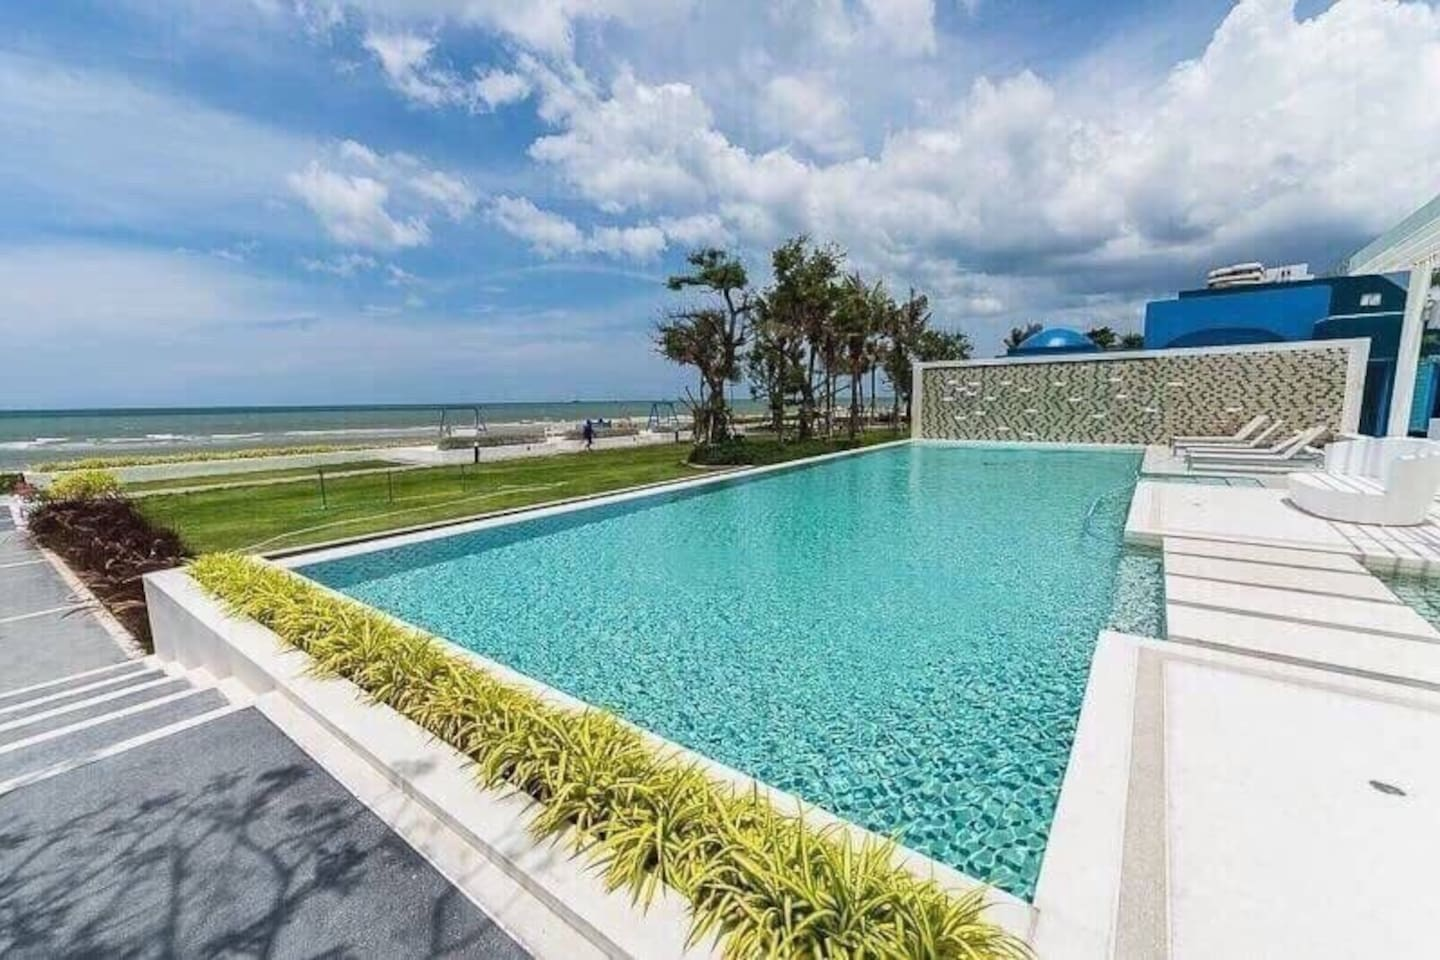 Sea side swimming pool